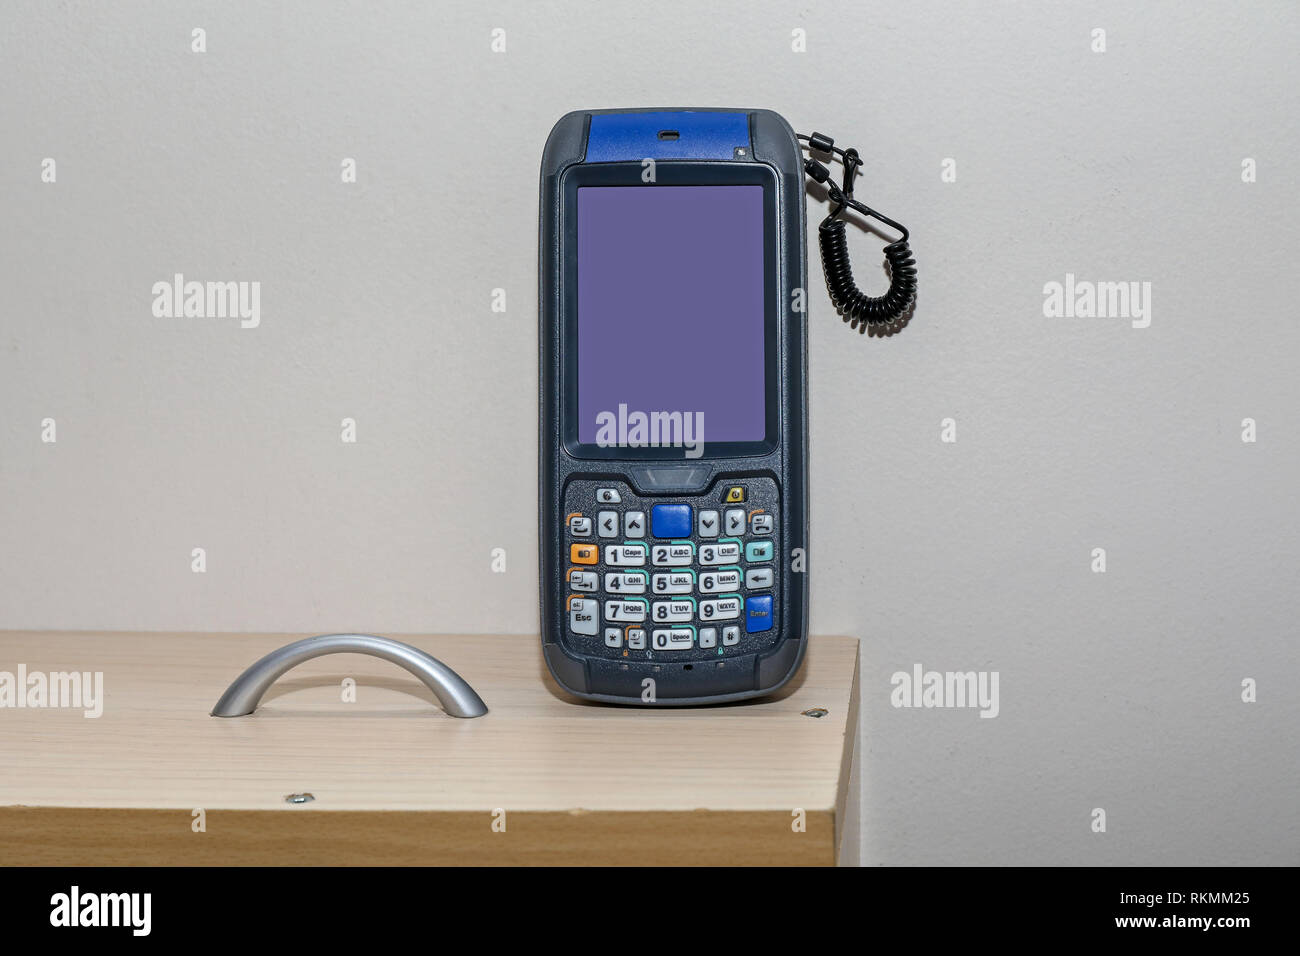 Handheld Barcode Scanner and Rfid Reader Portable Wireless Device